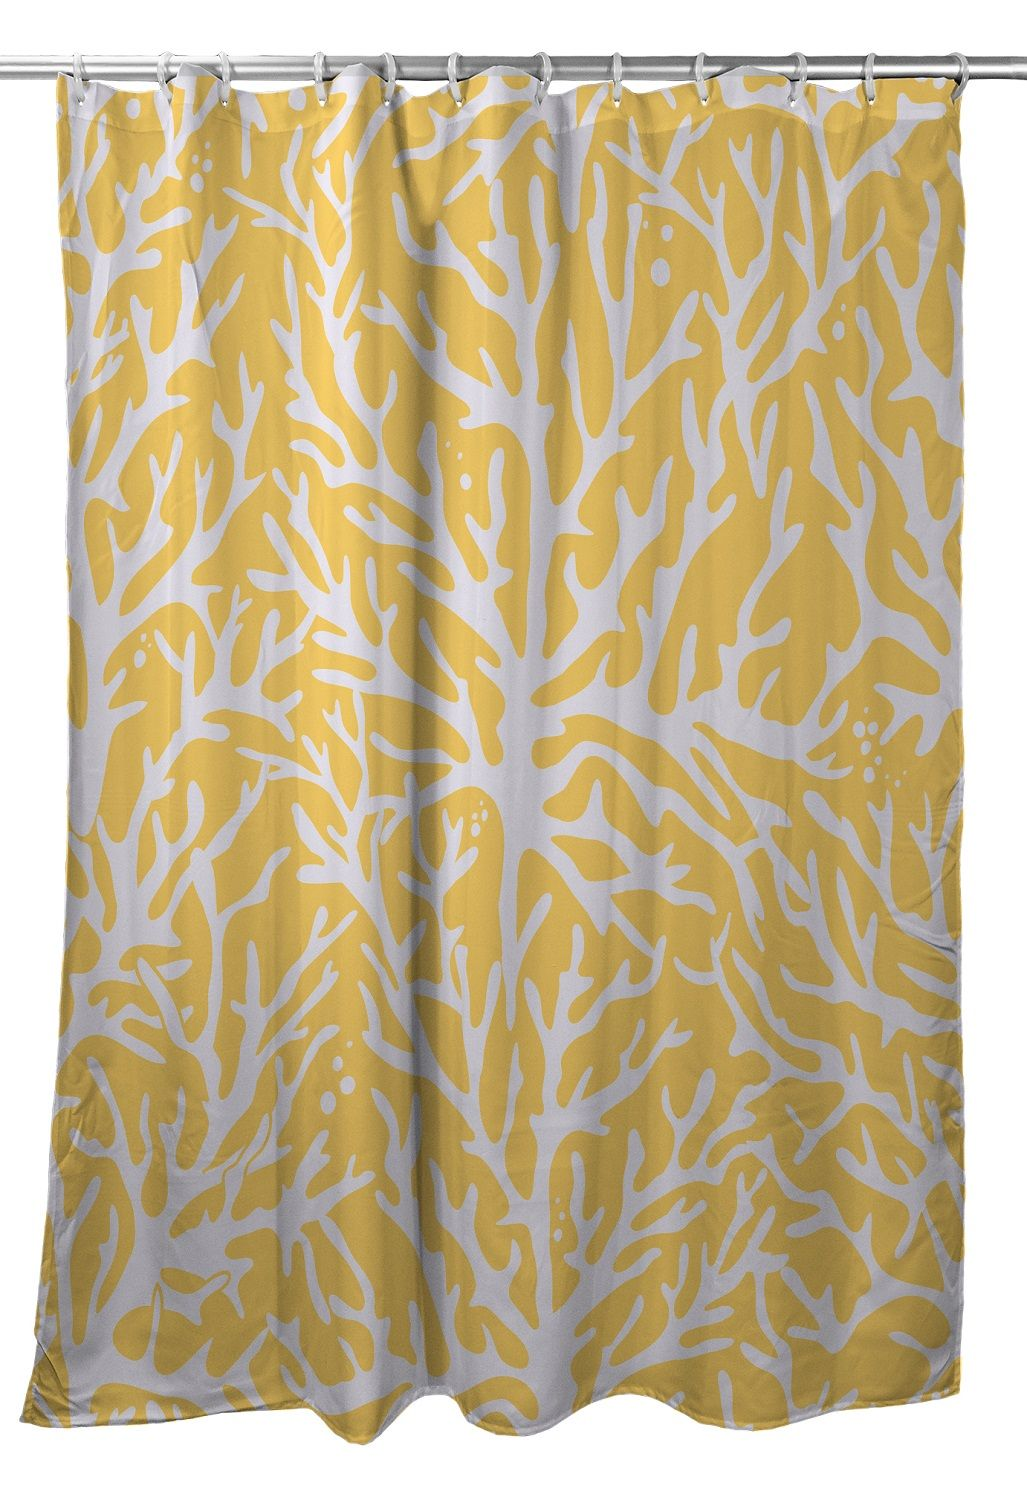 Sea Coral Shower Curtain Yellow Coral Shower Curtains Yellow